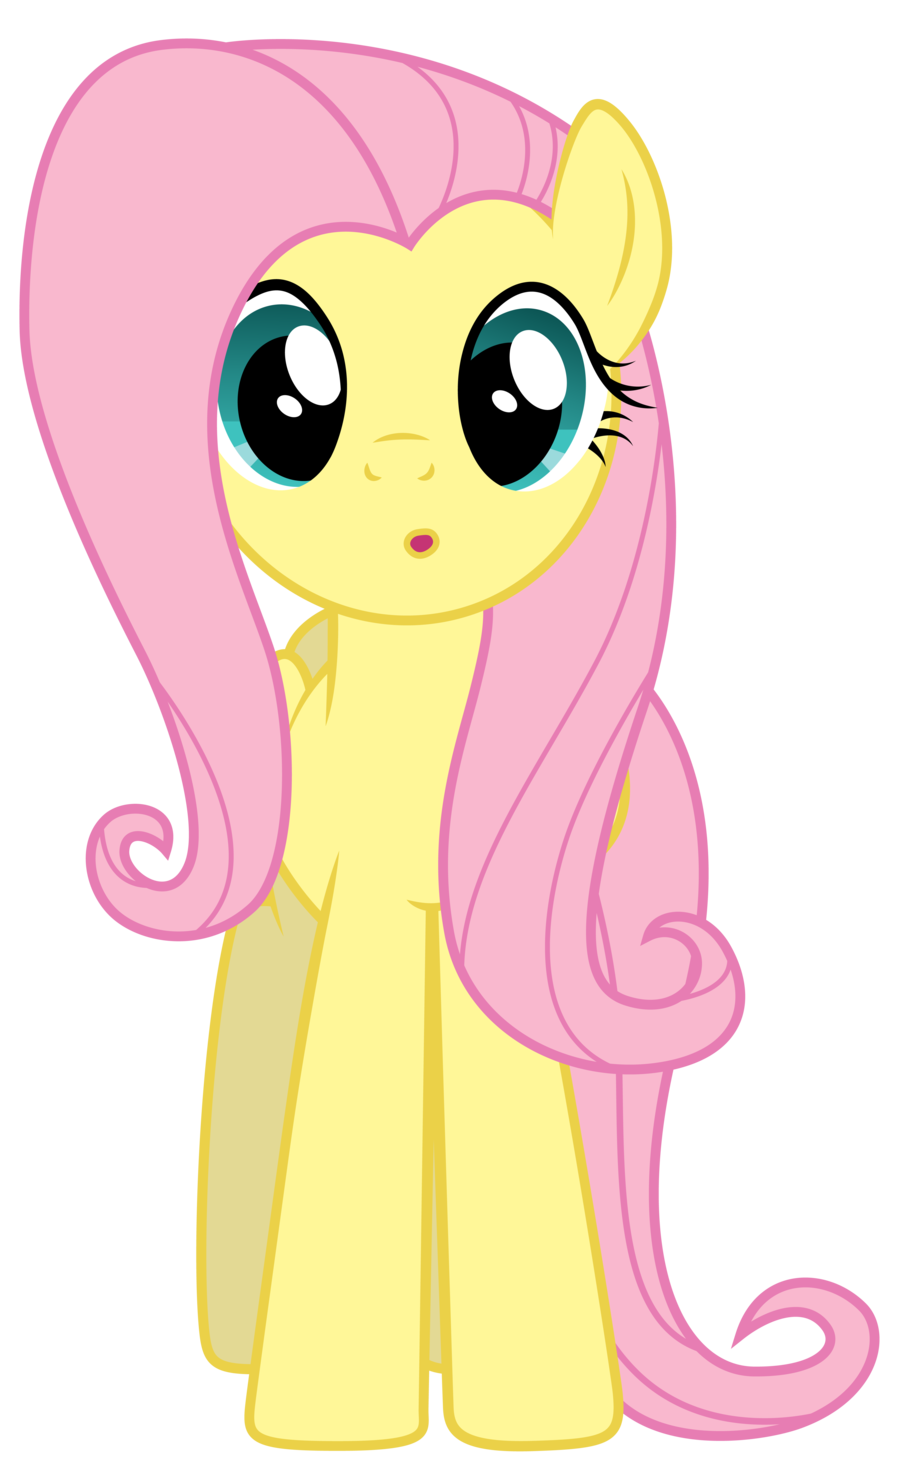 Curious Fluttershy 2 by Yanoda on DeviantArt.